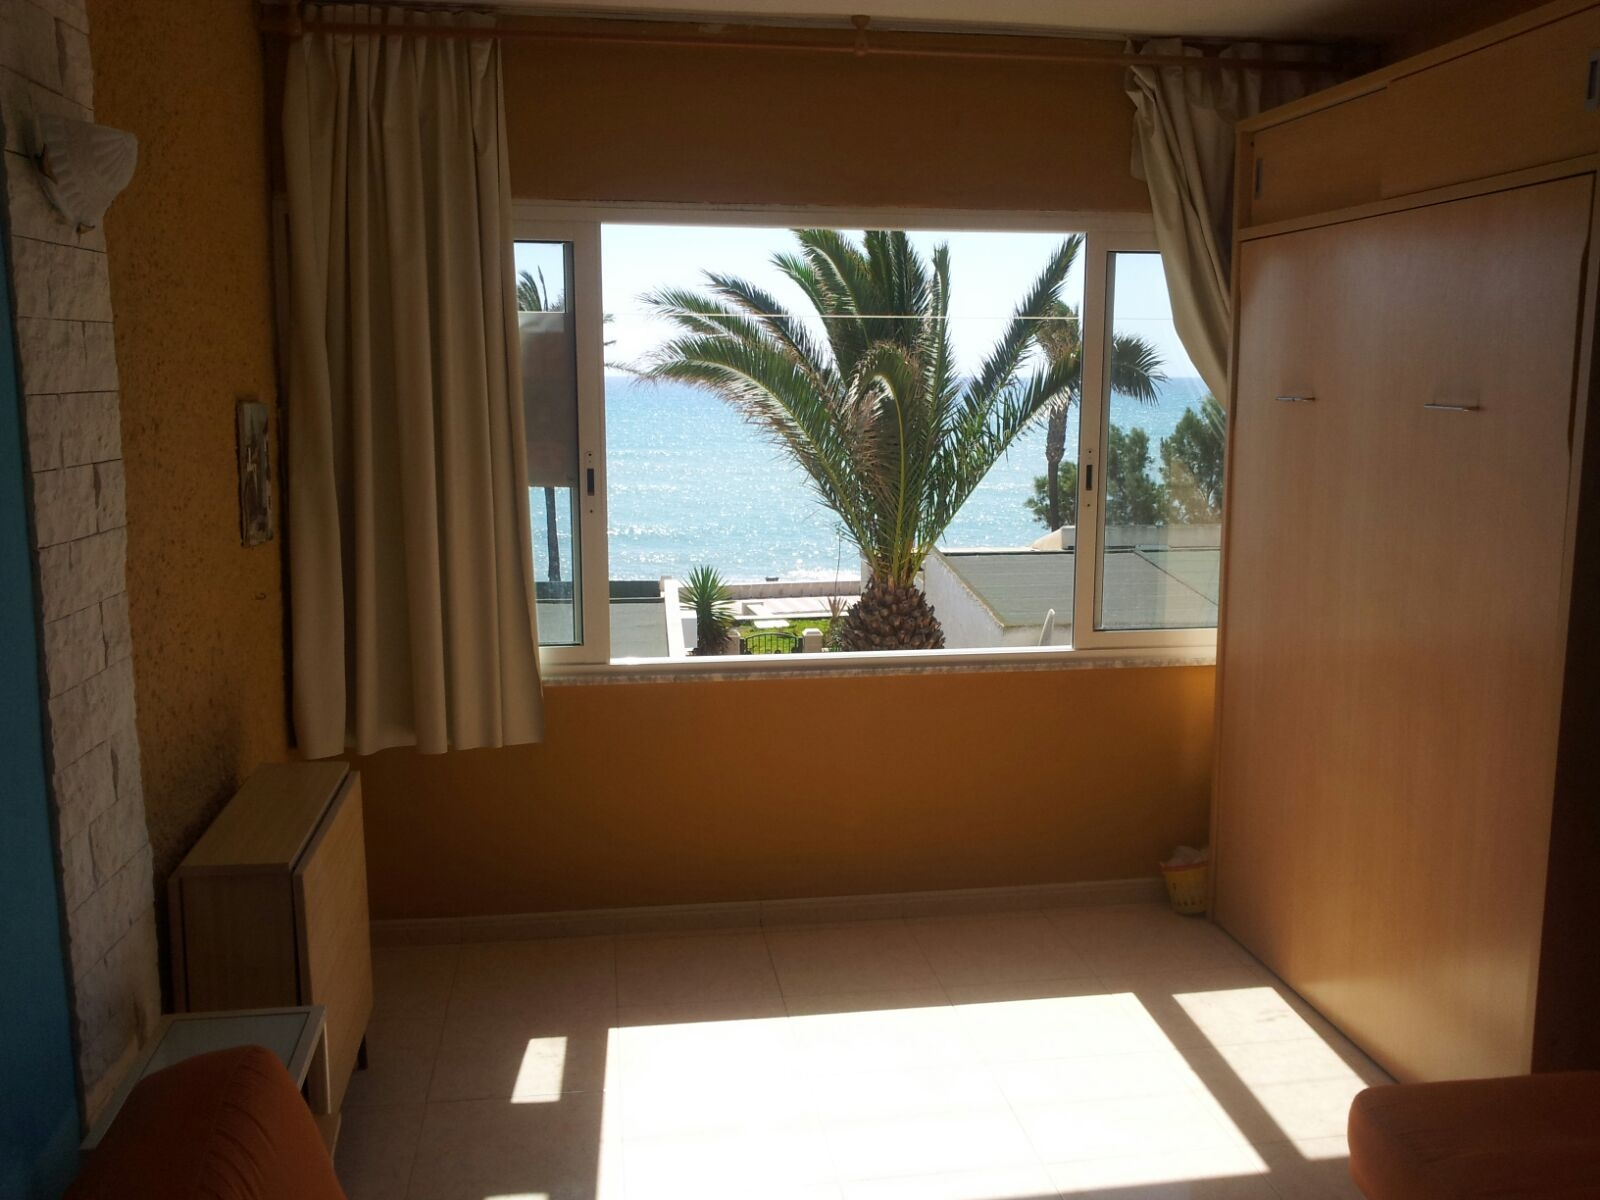 Studio for rent in Roquetas de Mar